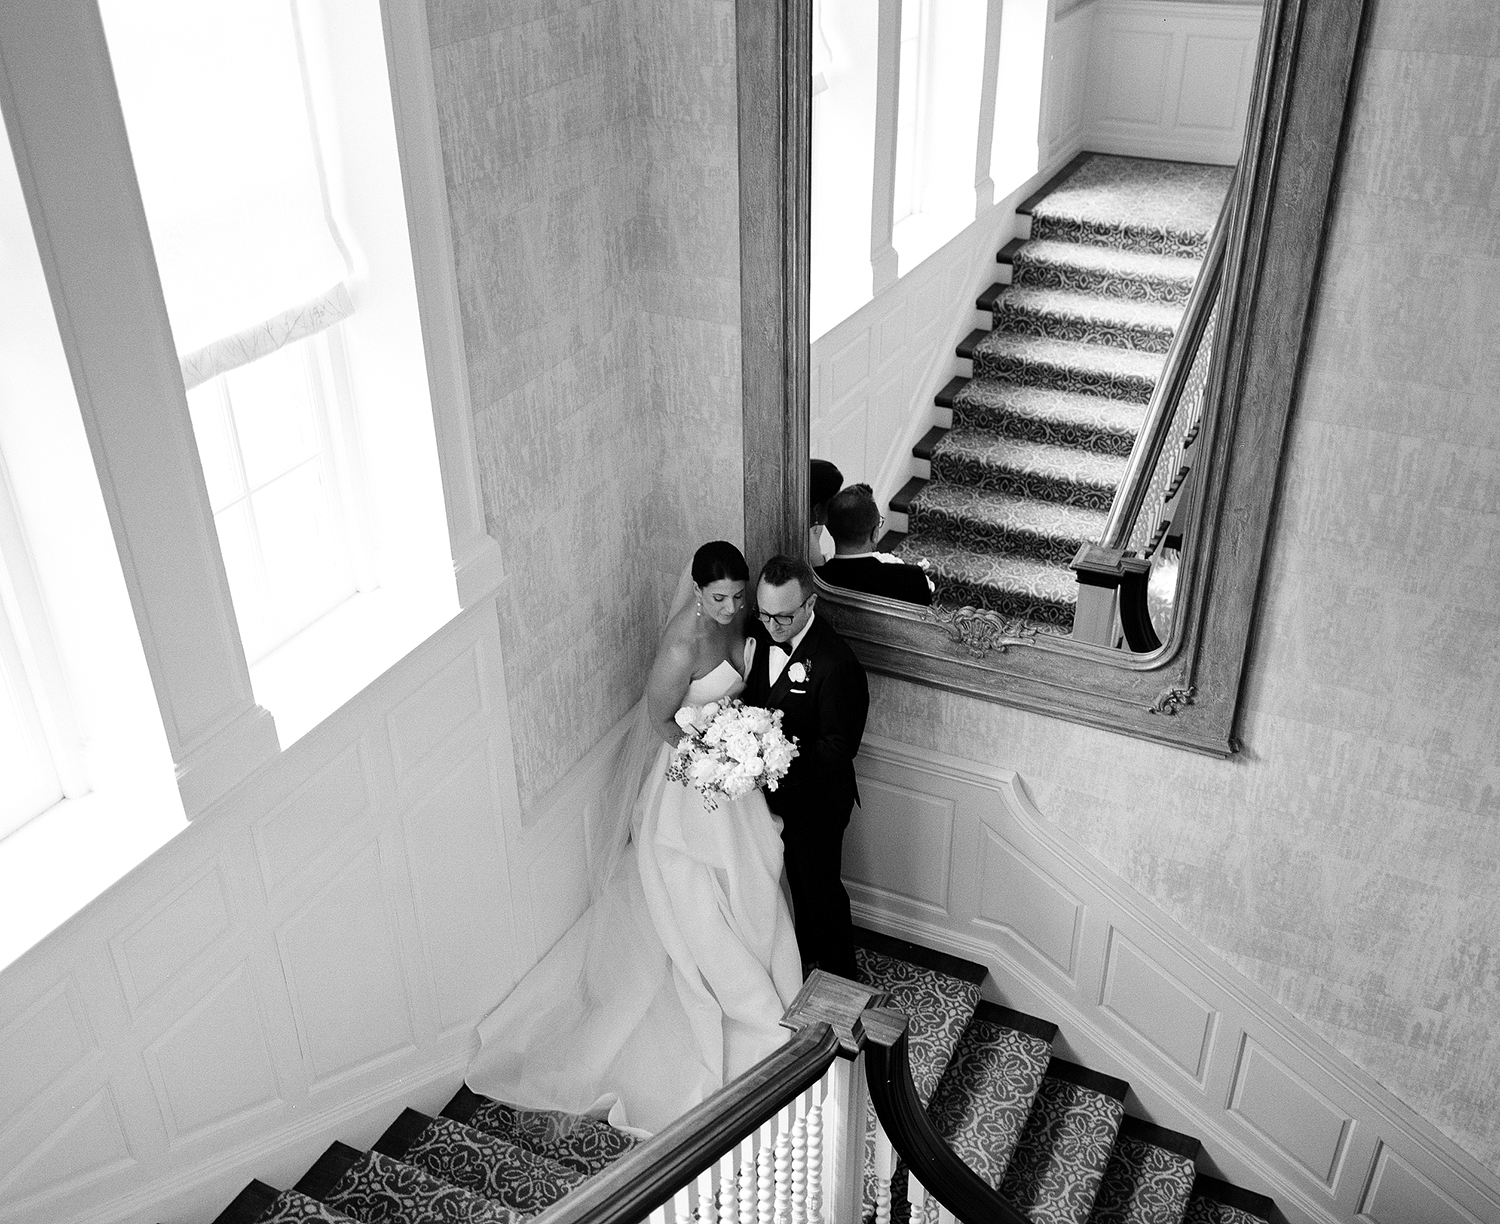 Graydon-Hall-wedding-photography-on-analog-film.jpg